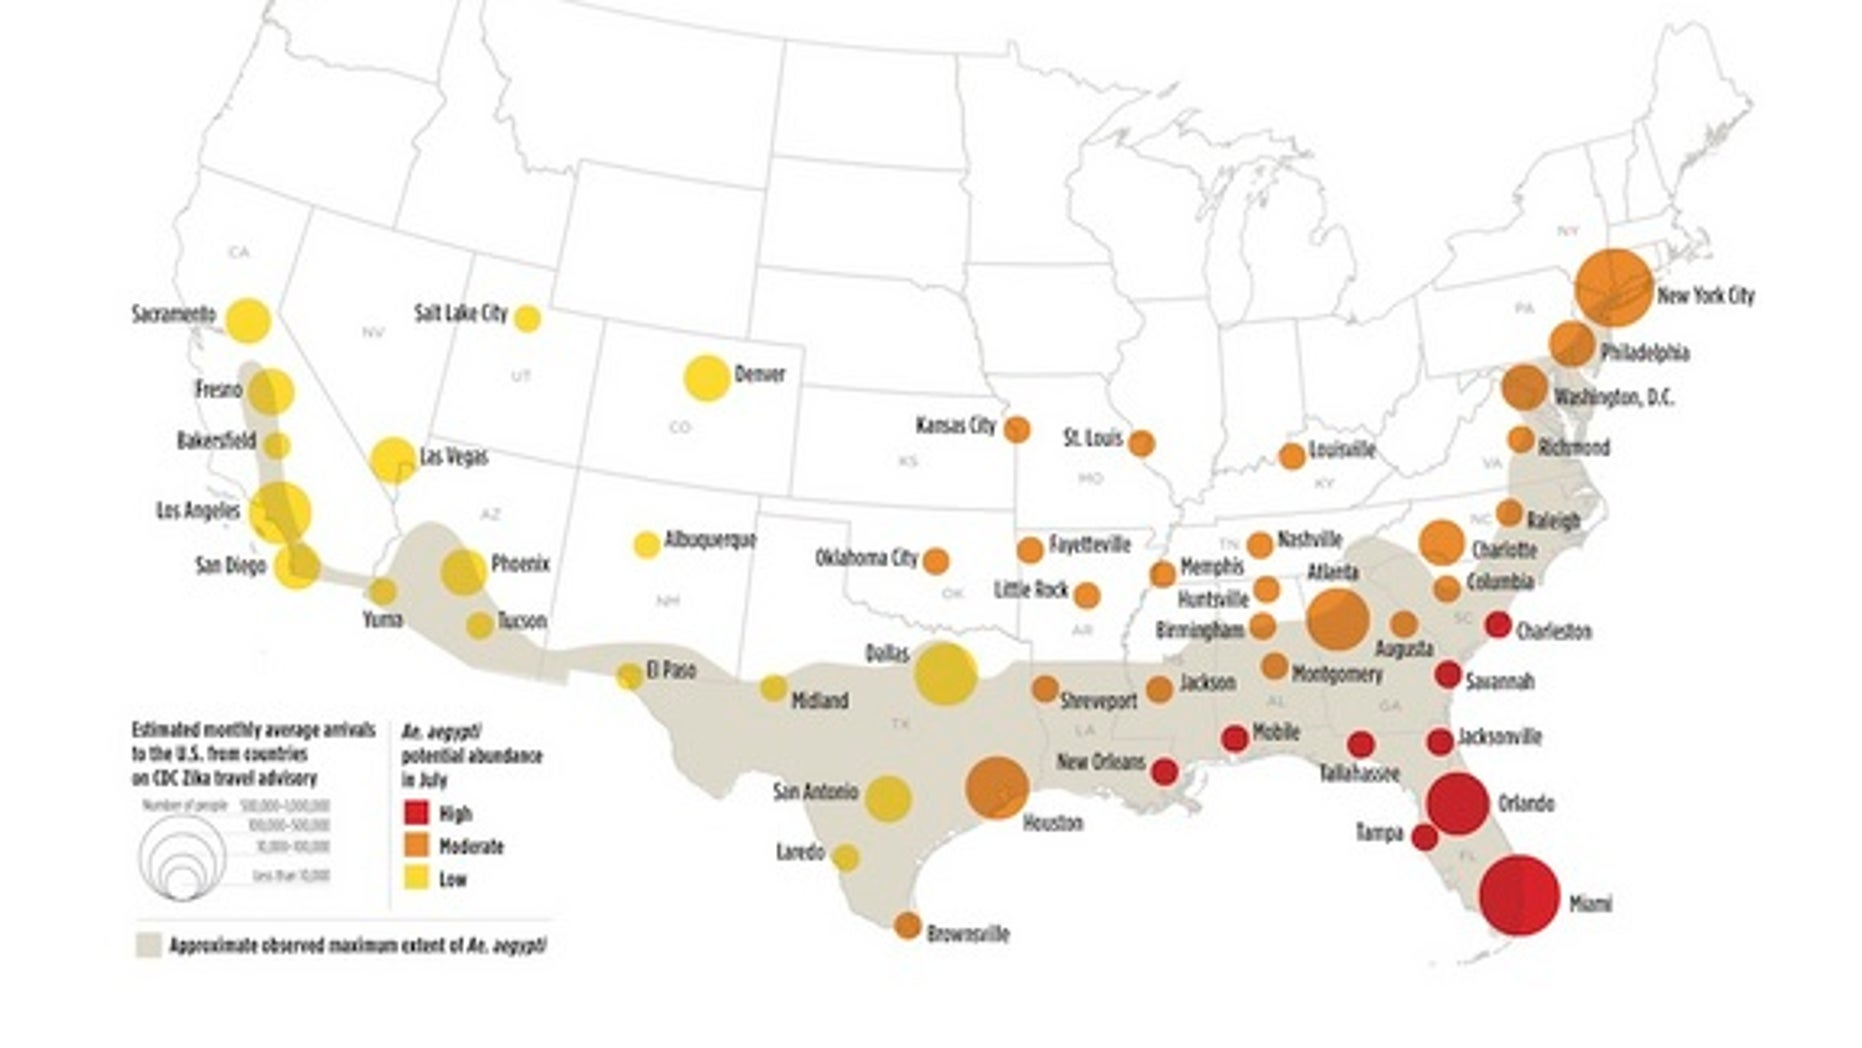 Though most of the U.S. has a low risk of Zika transmission in the spring, by July portions of the southeast will have a high risk of local Zika transmission, though the extent of these outbreaks will likely be limited.